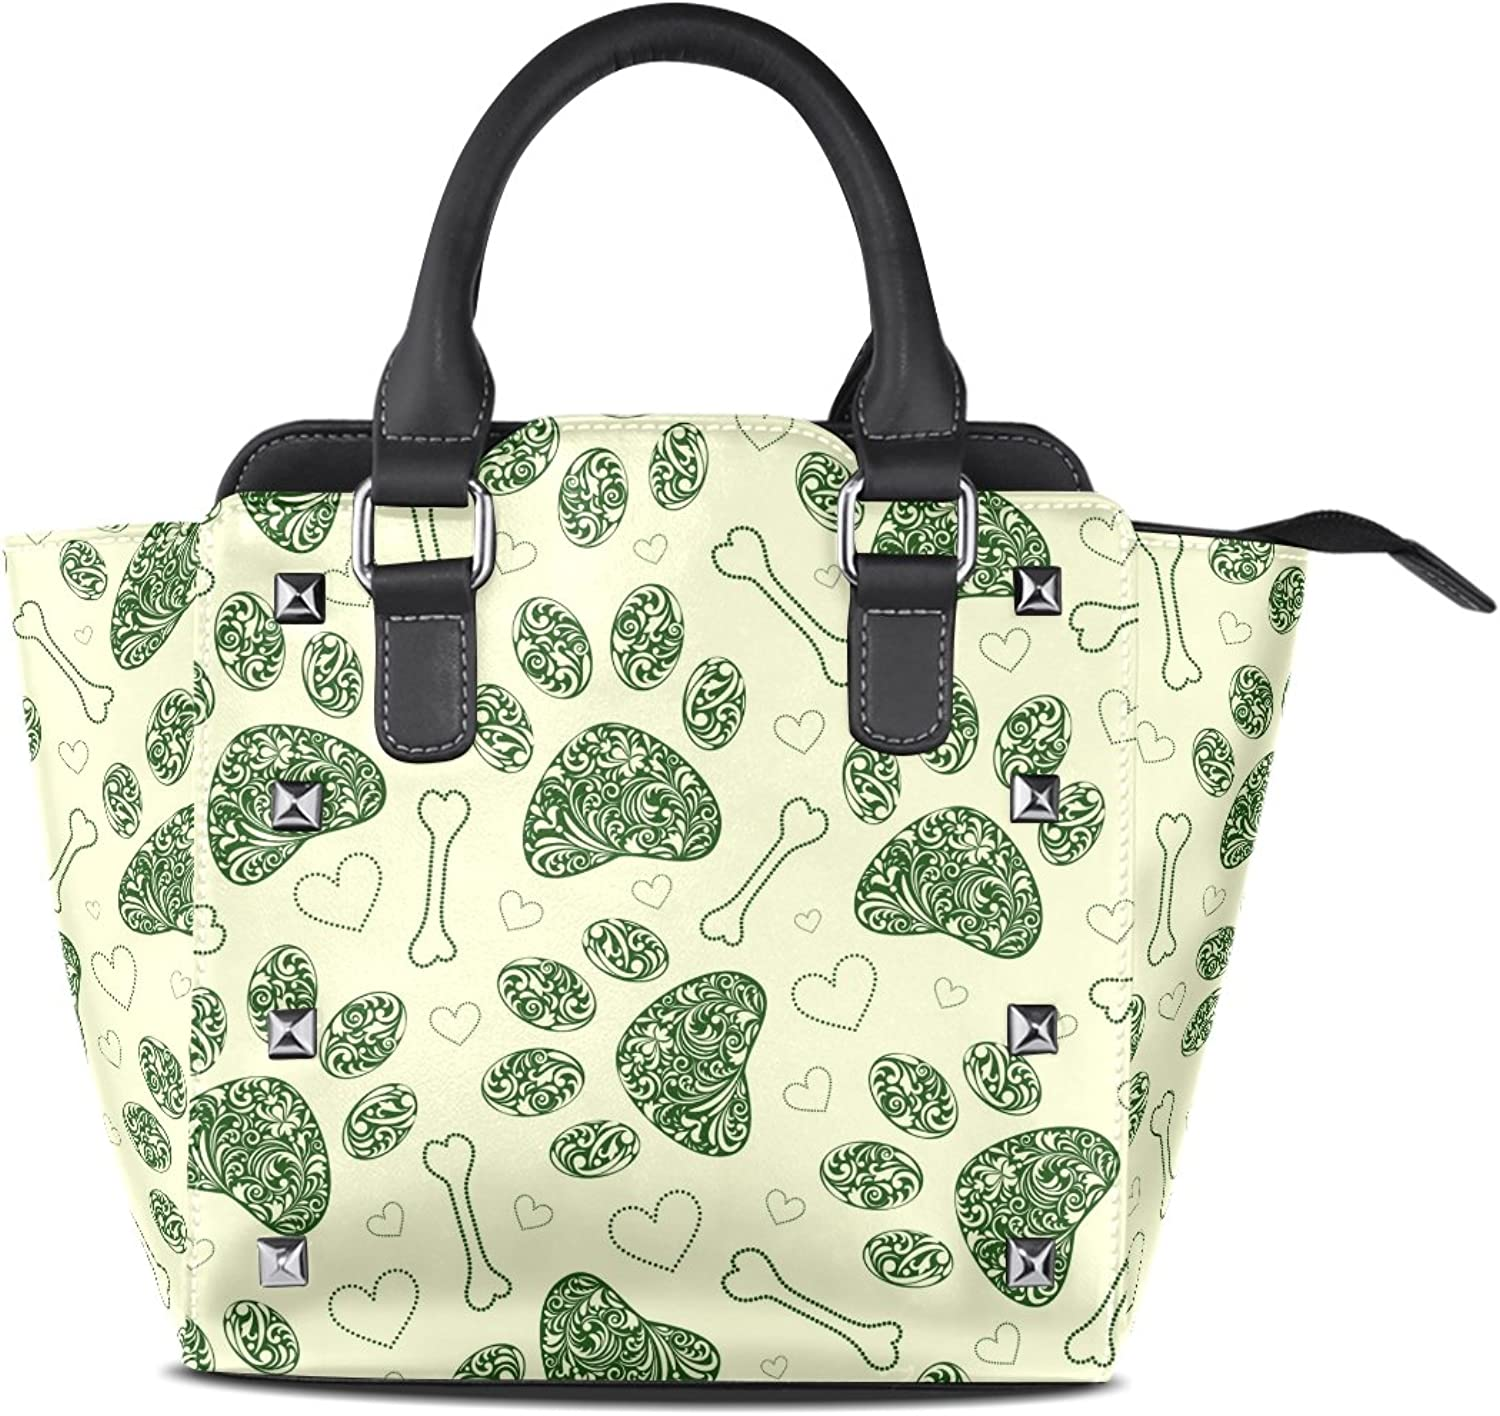 Sunlome Cute Cat Dog Floral Paws Footprints Print Handbags Women's PU Leather Top-Handle Shoulder Bags